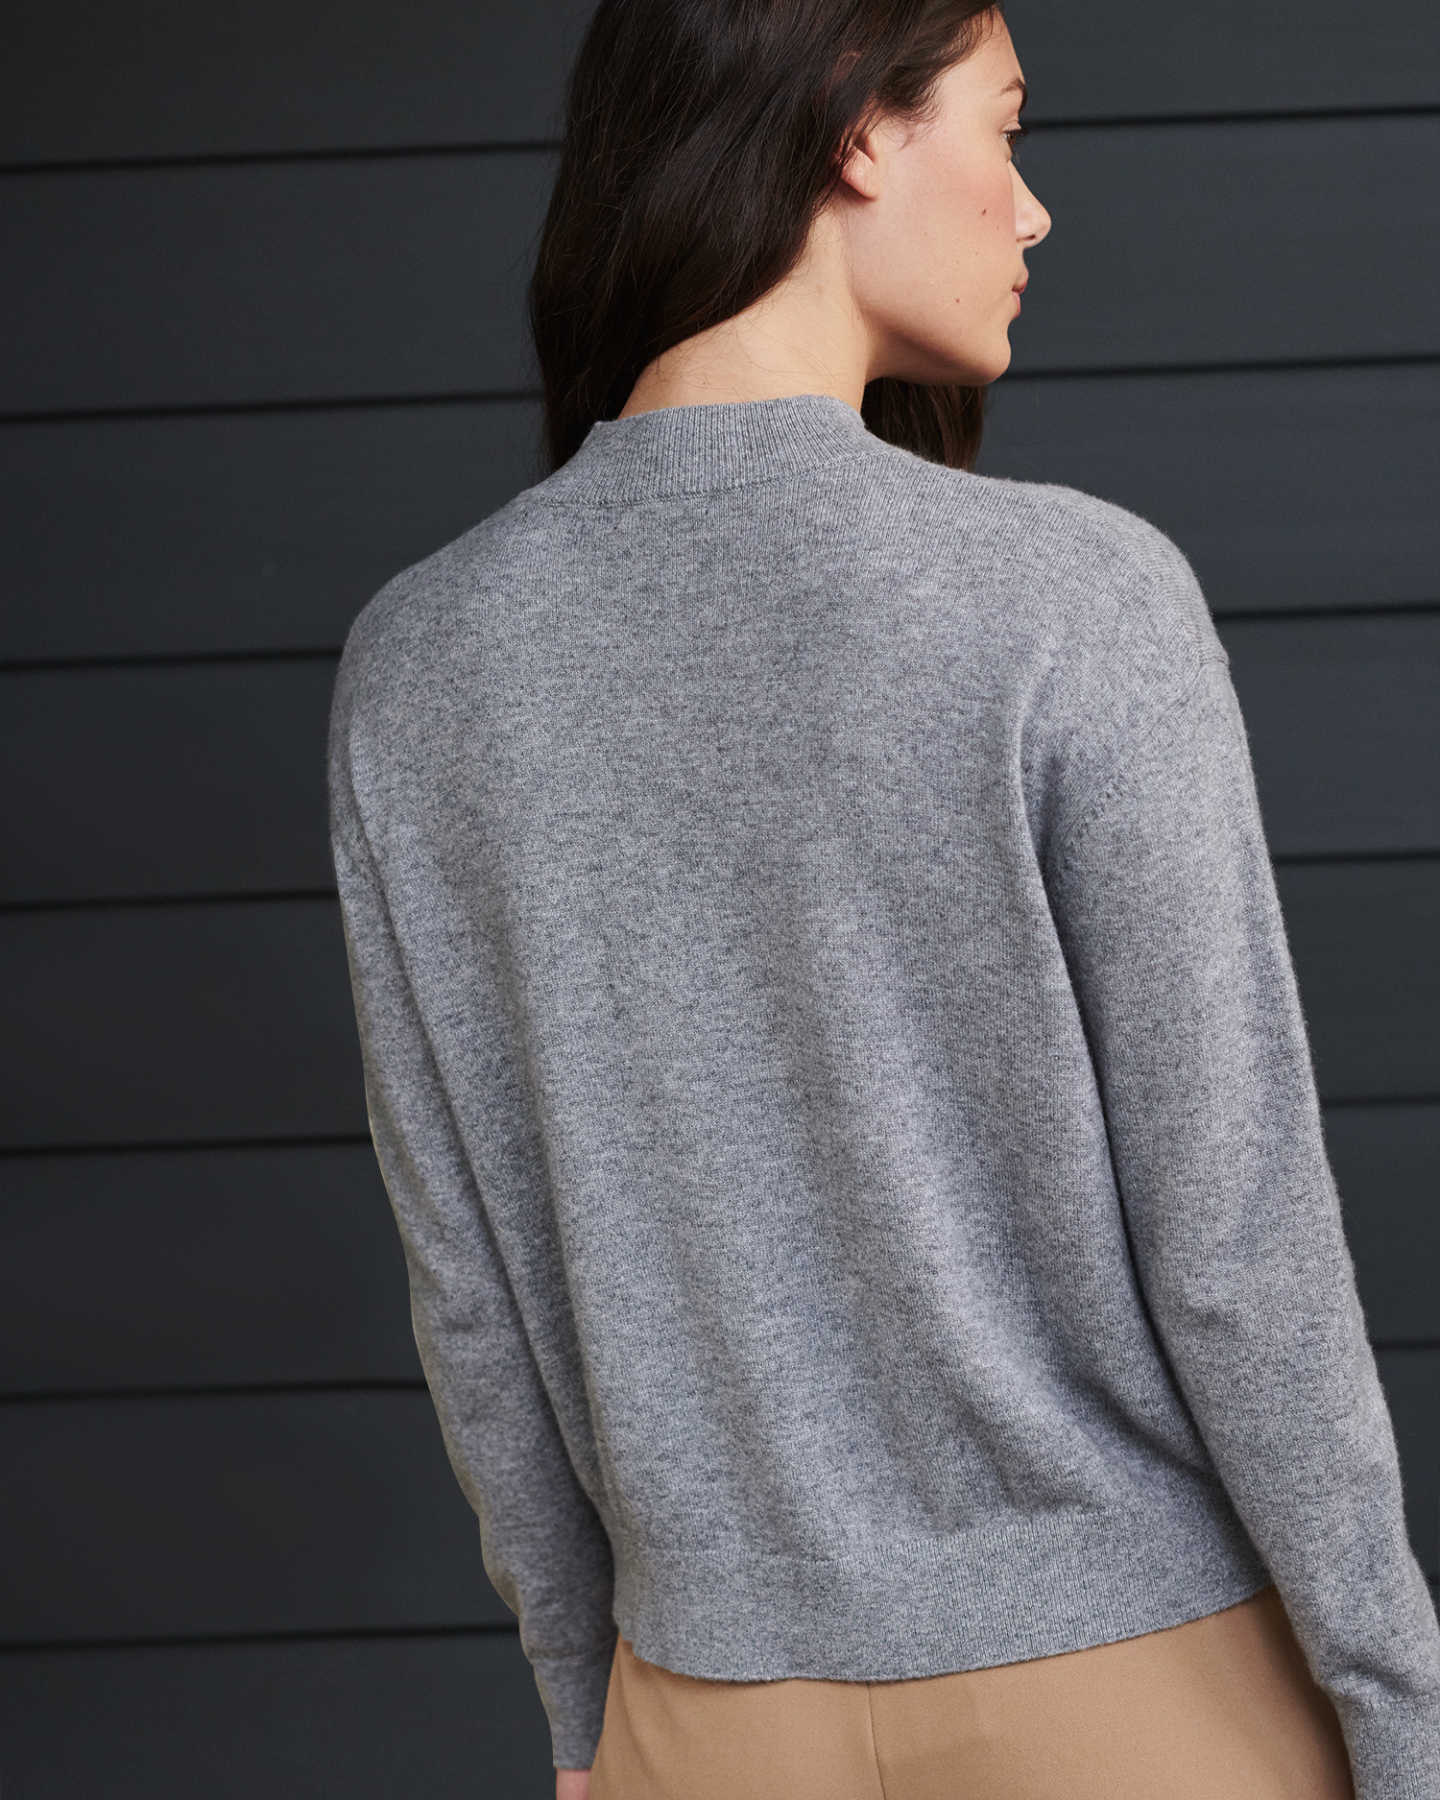 Woman wearing grey cashmere mockneck sweater from back